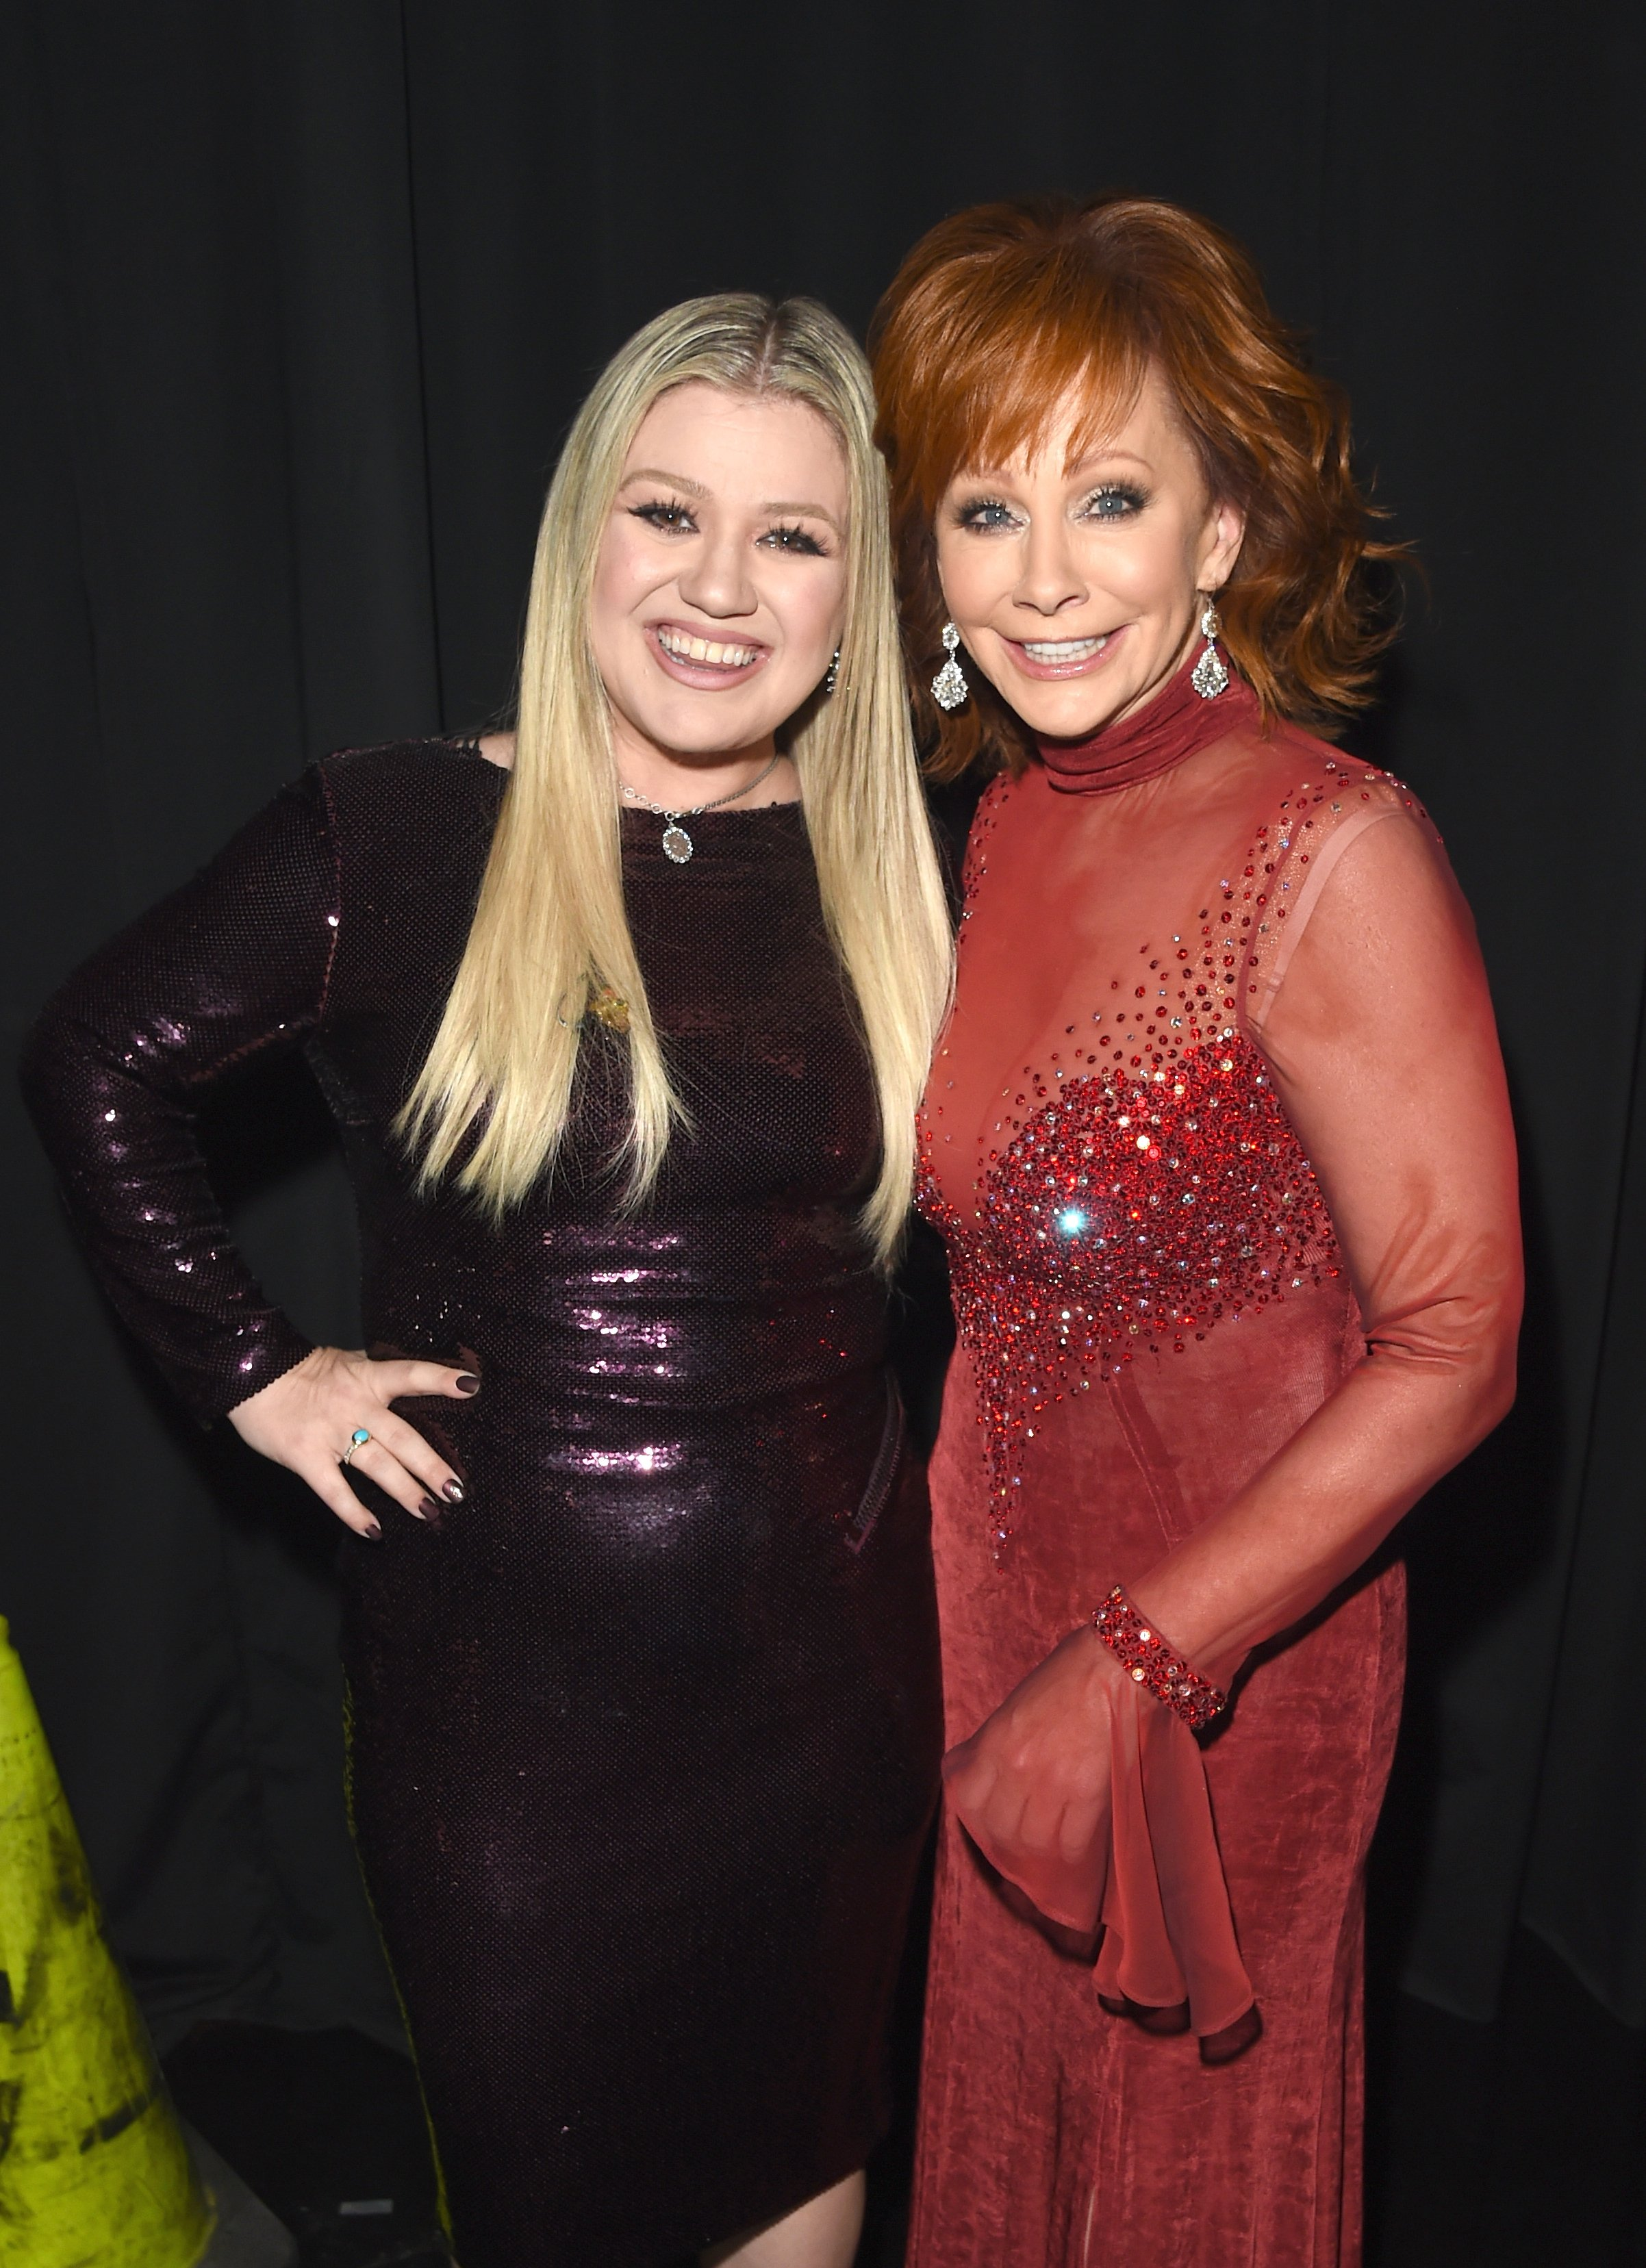 Image Credits: Getty Images | Reba and Kelly Clarkson are good friends